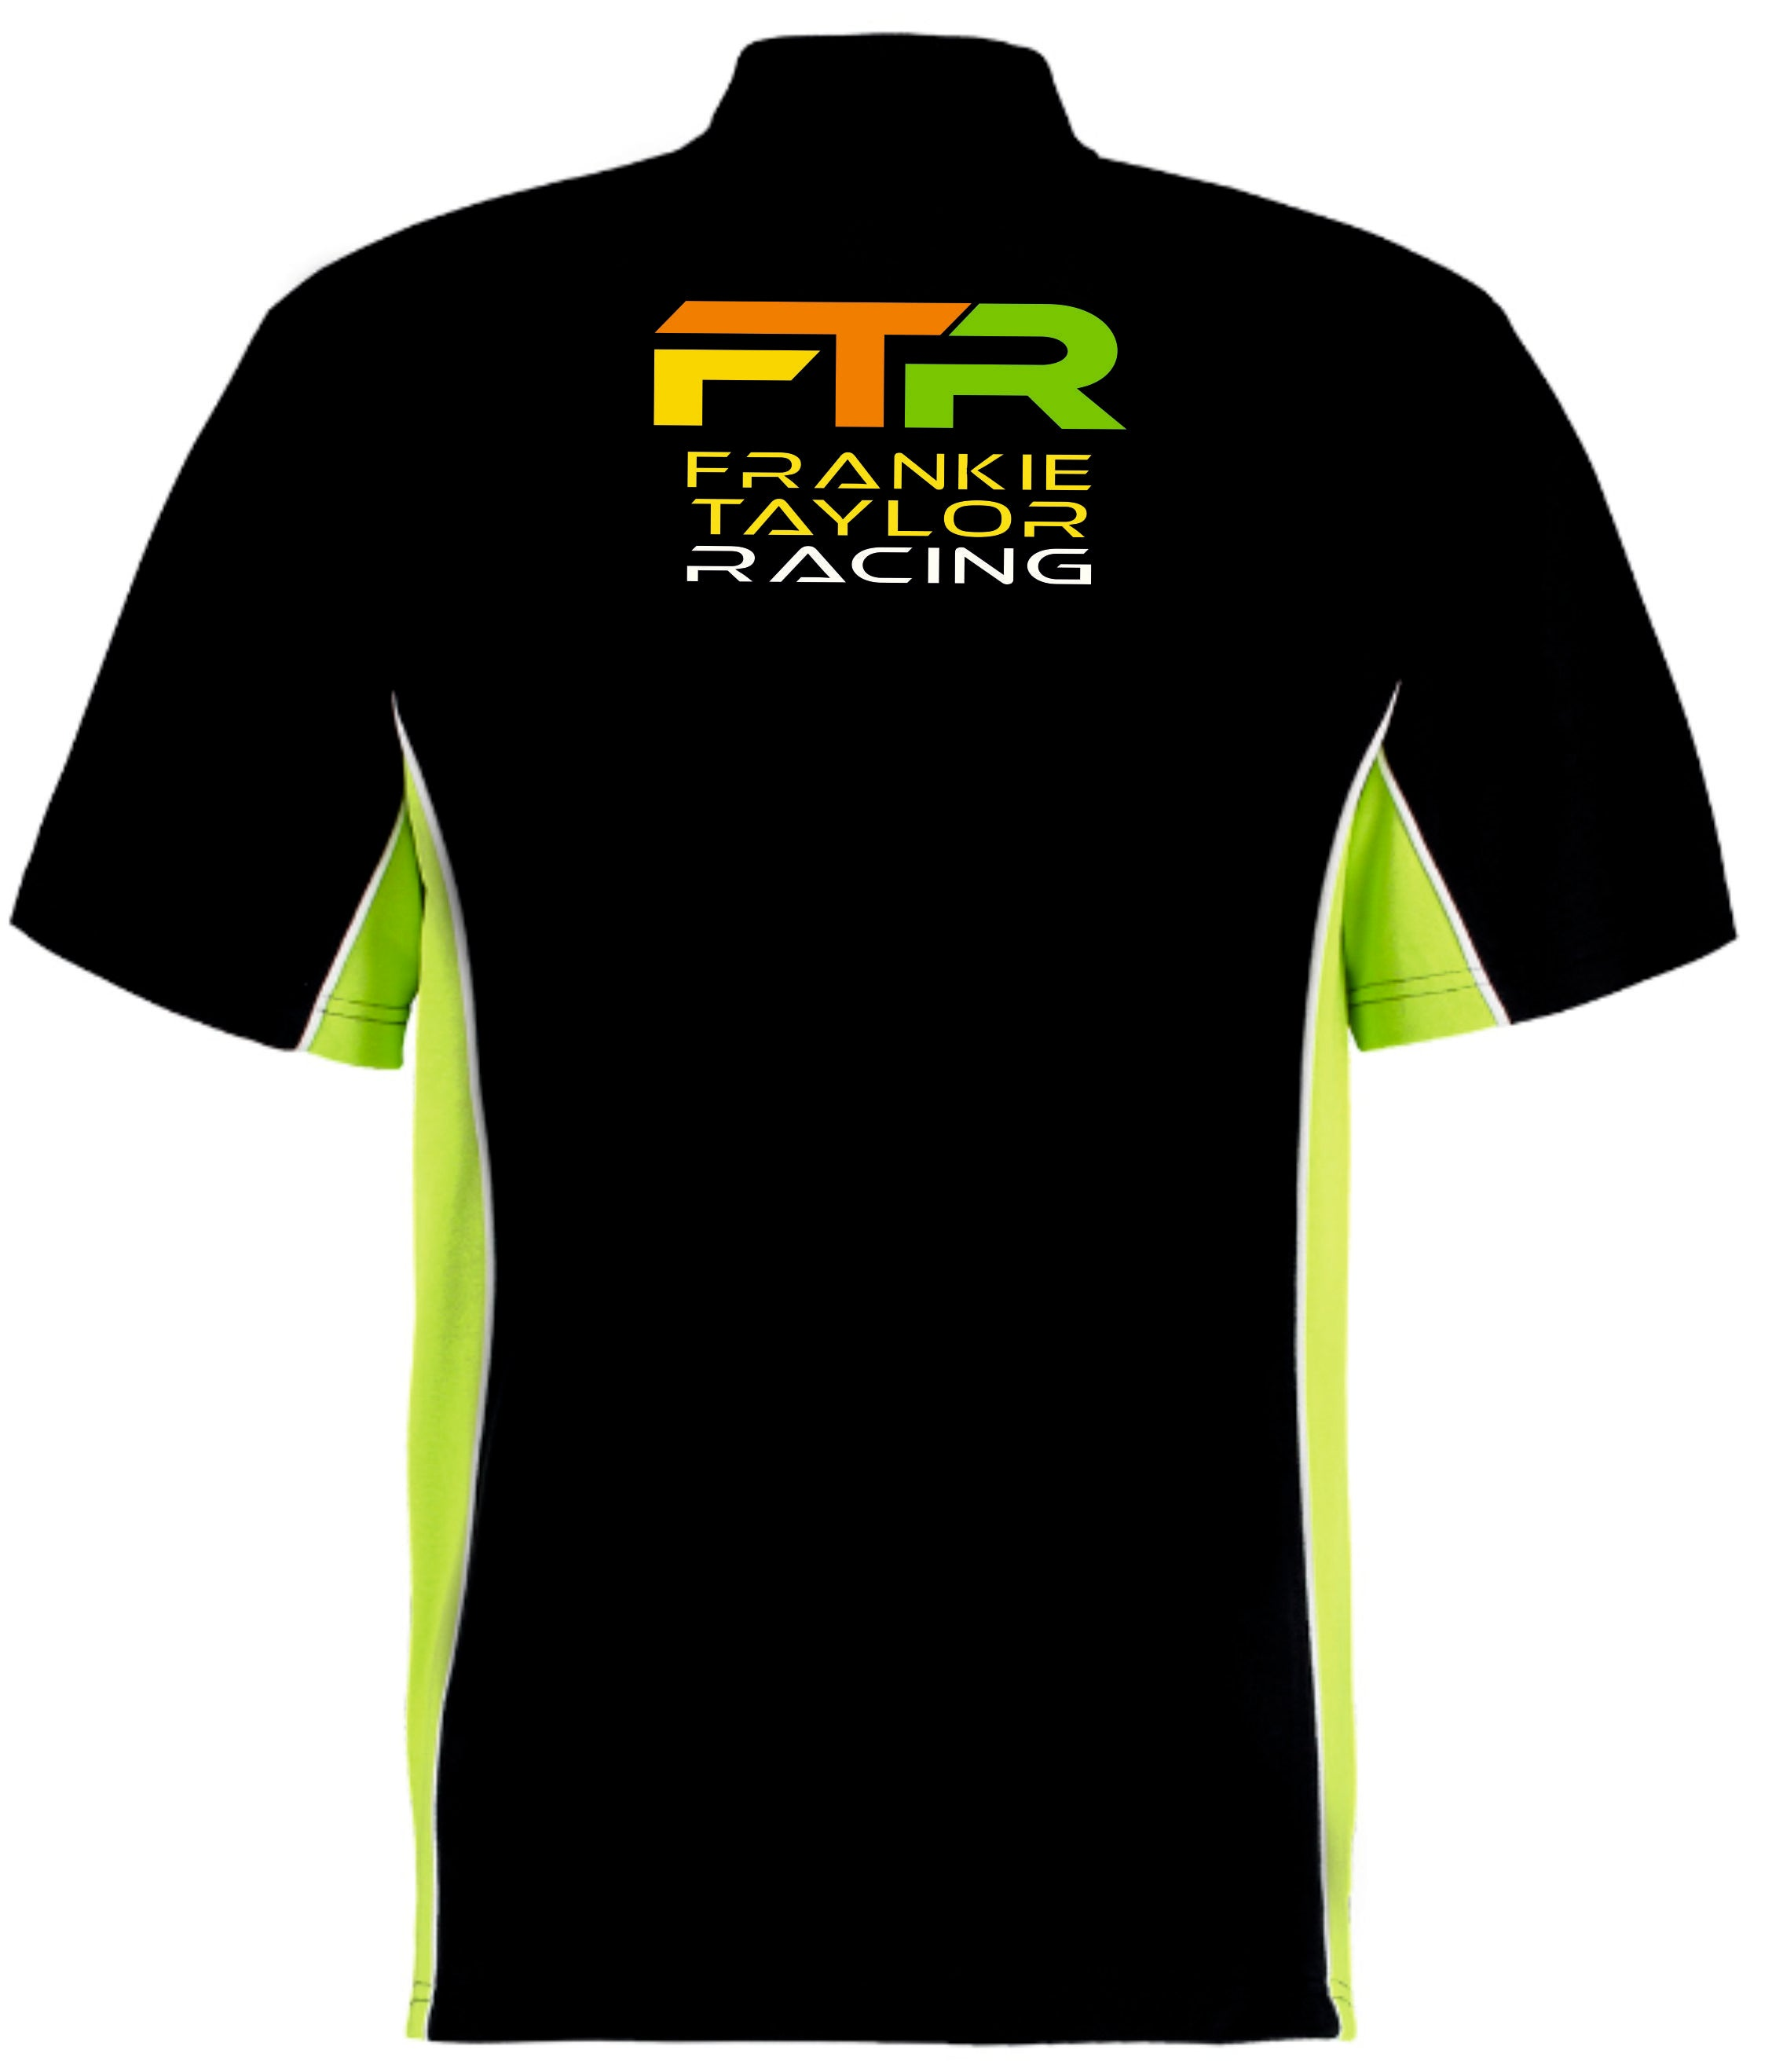 Frankie Taylor Racing Polo Shirt